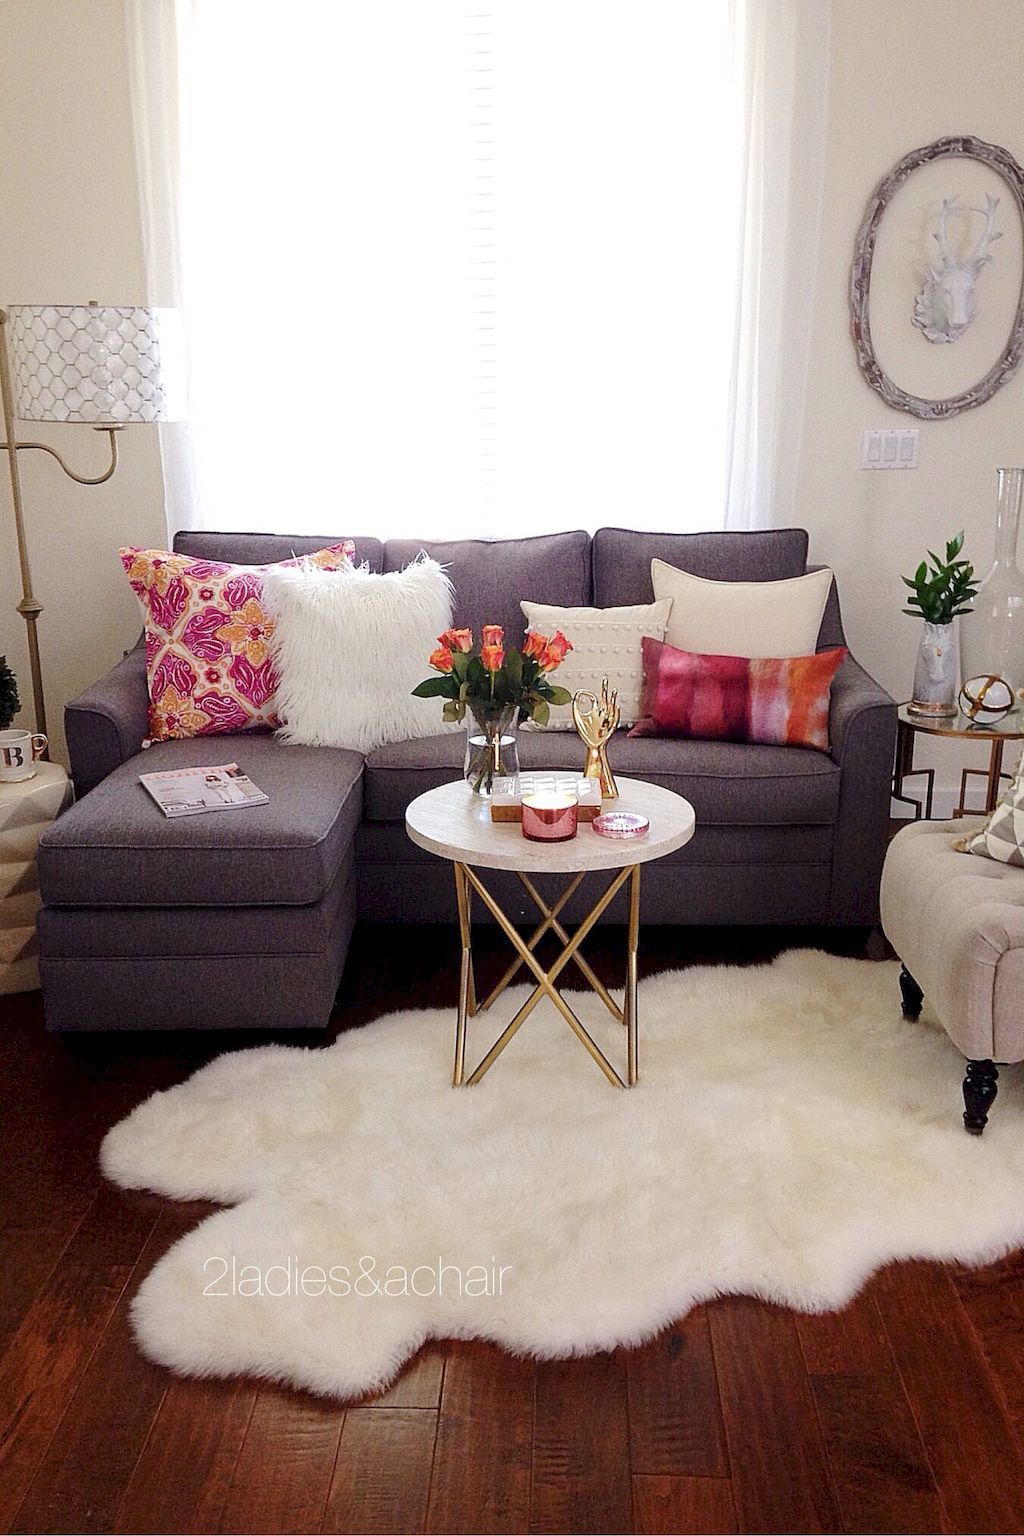 Decorating An Apartment In Budget Small Apartment Decorating